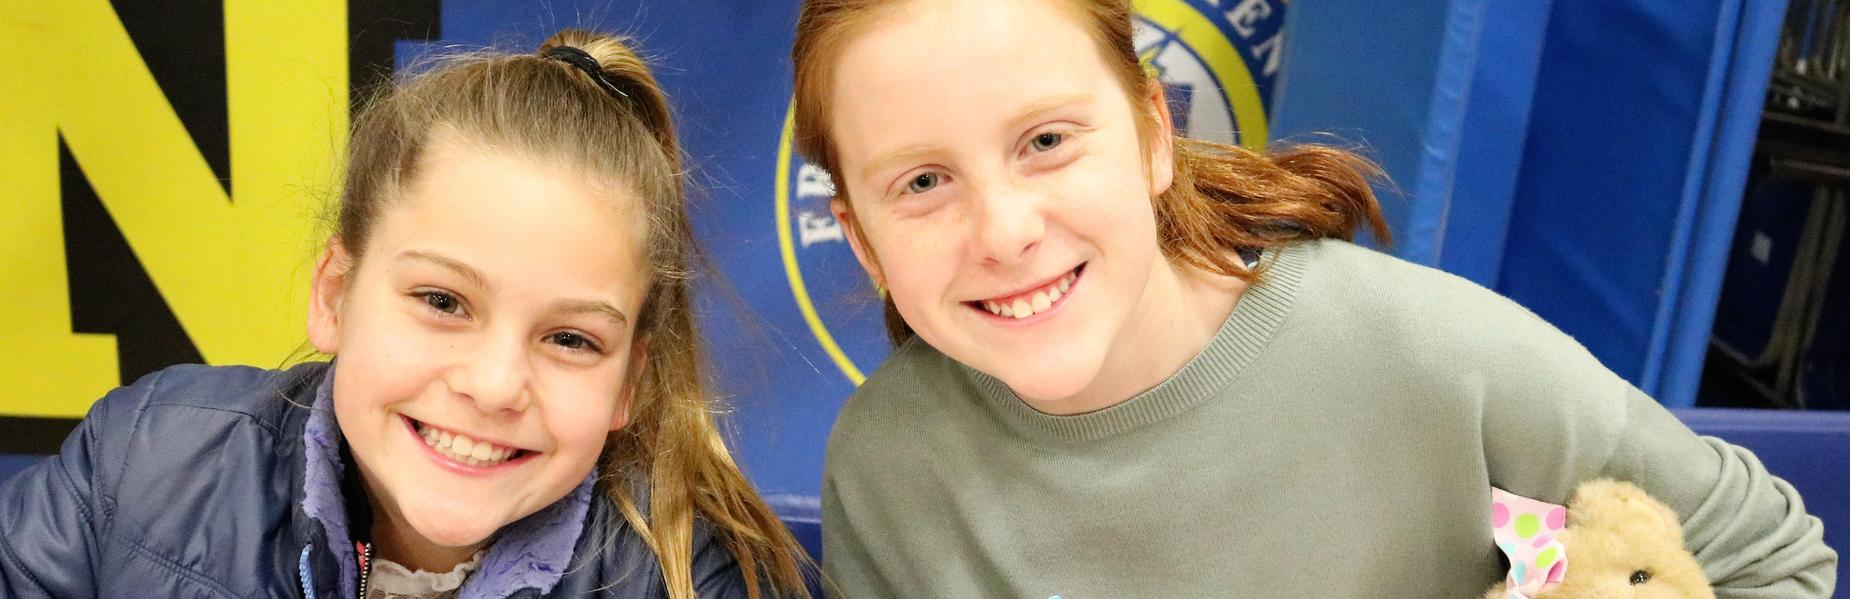 Photo of two sisters at Franklin School participating in Community Service Night activities.